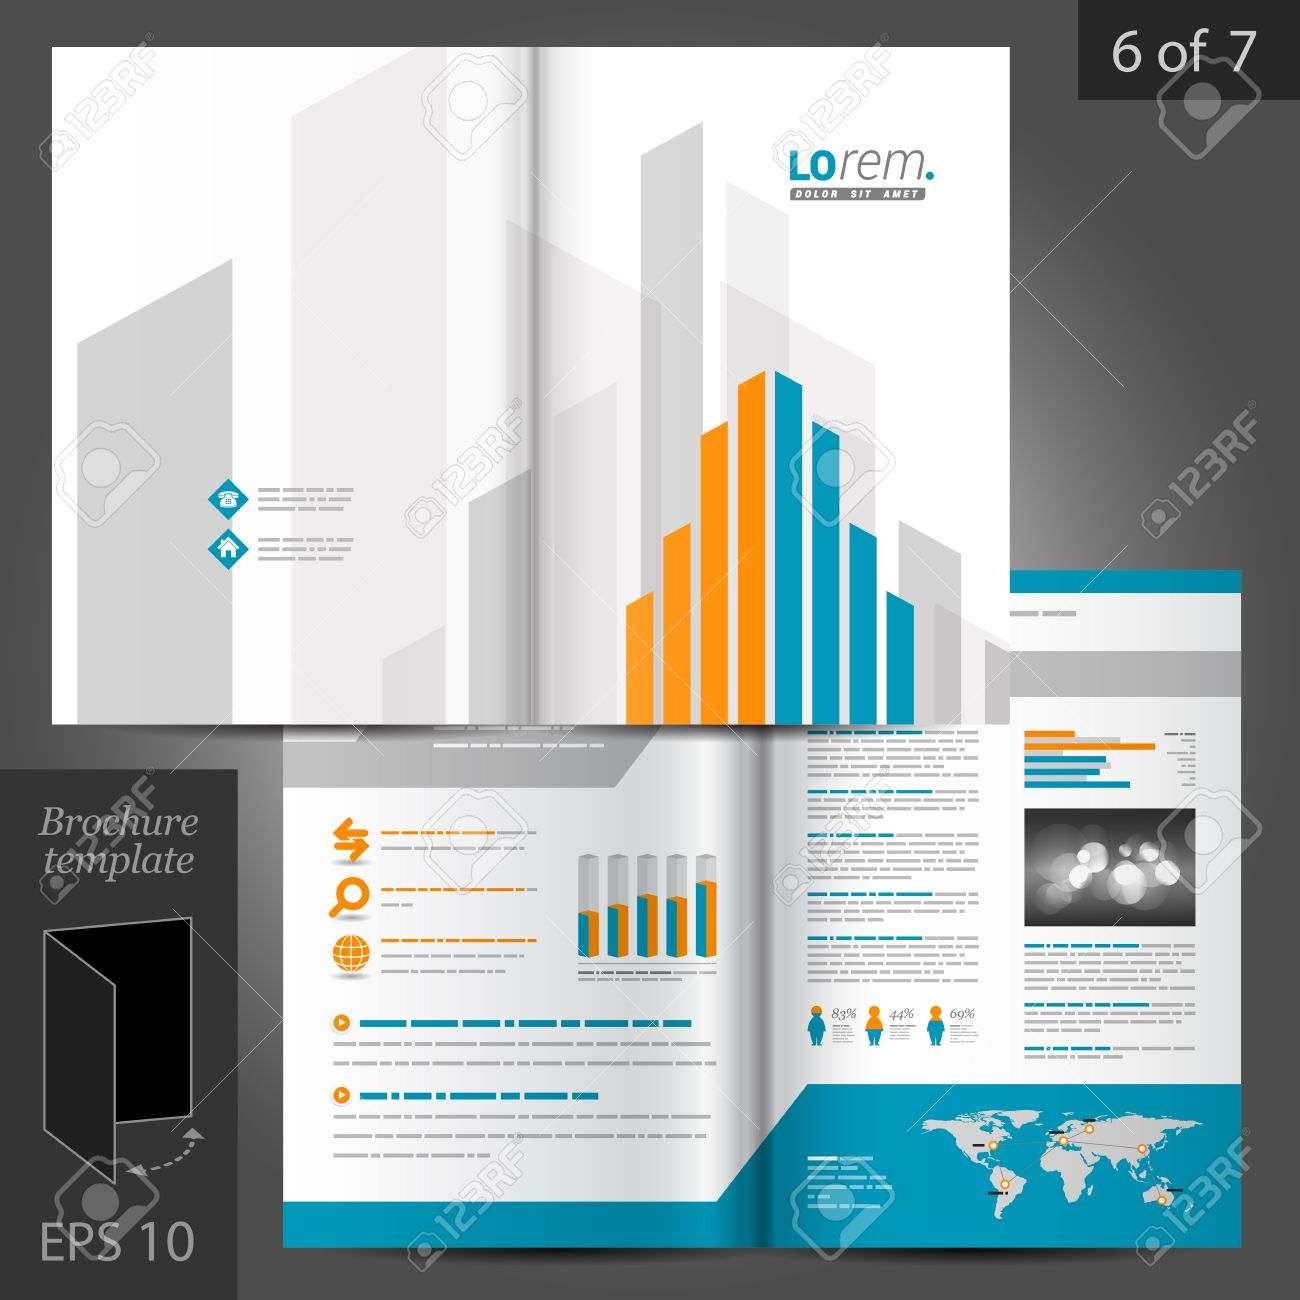 White Brochure Template Design With Orange And Blue Building - Brochure template ideas